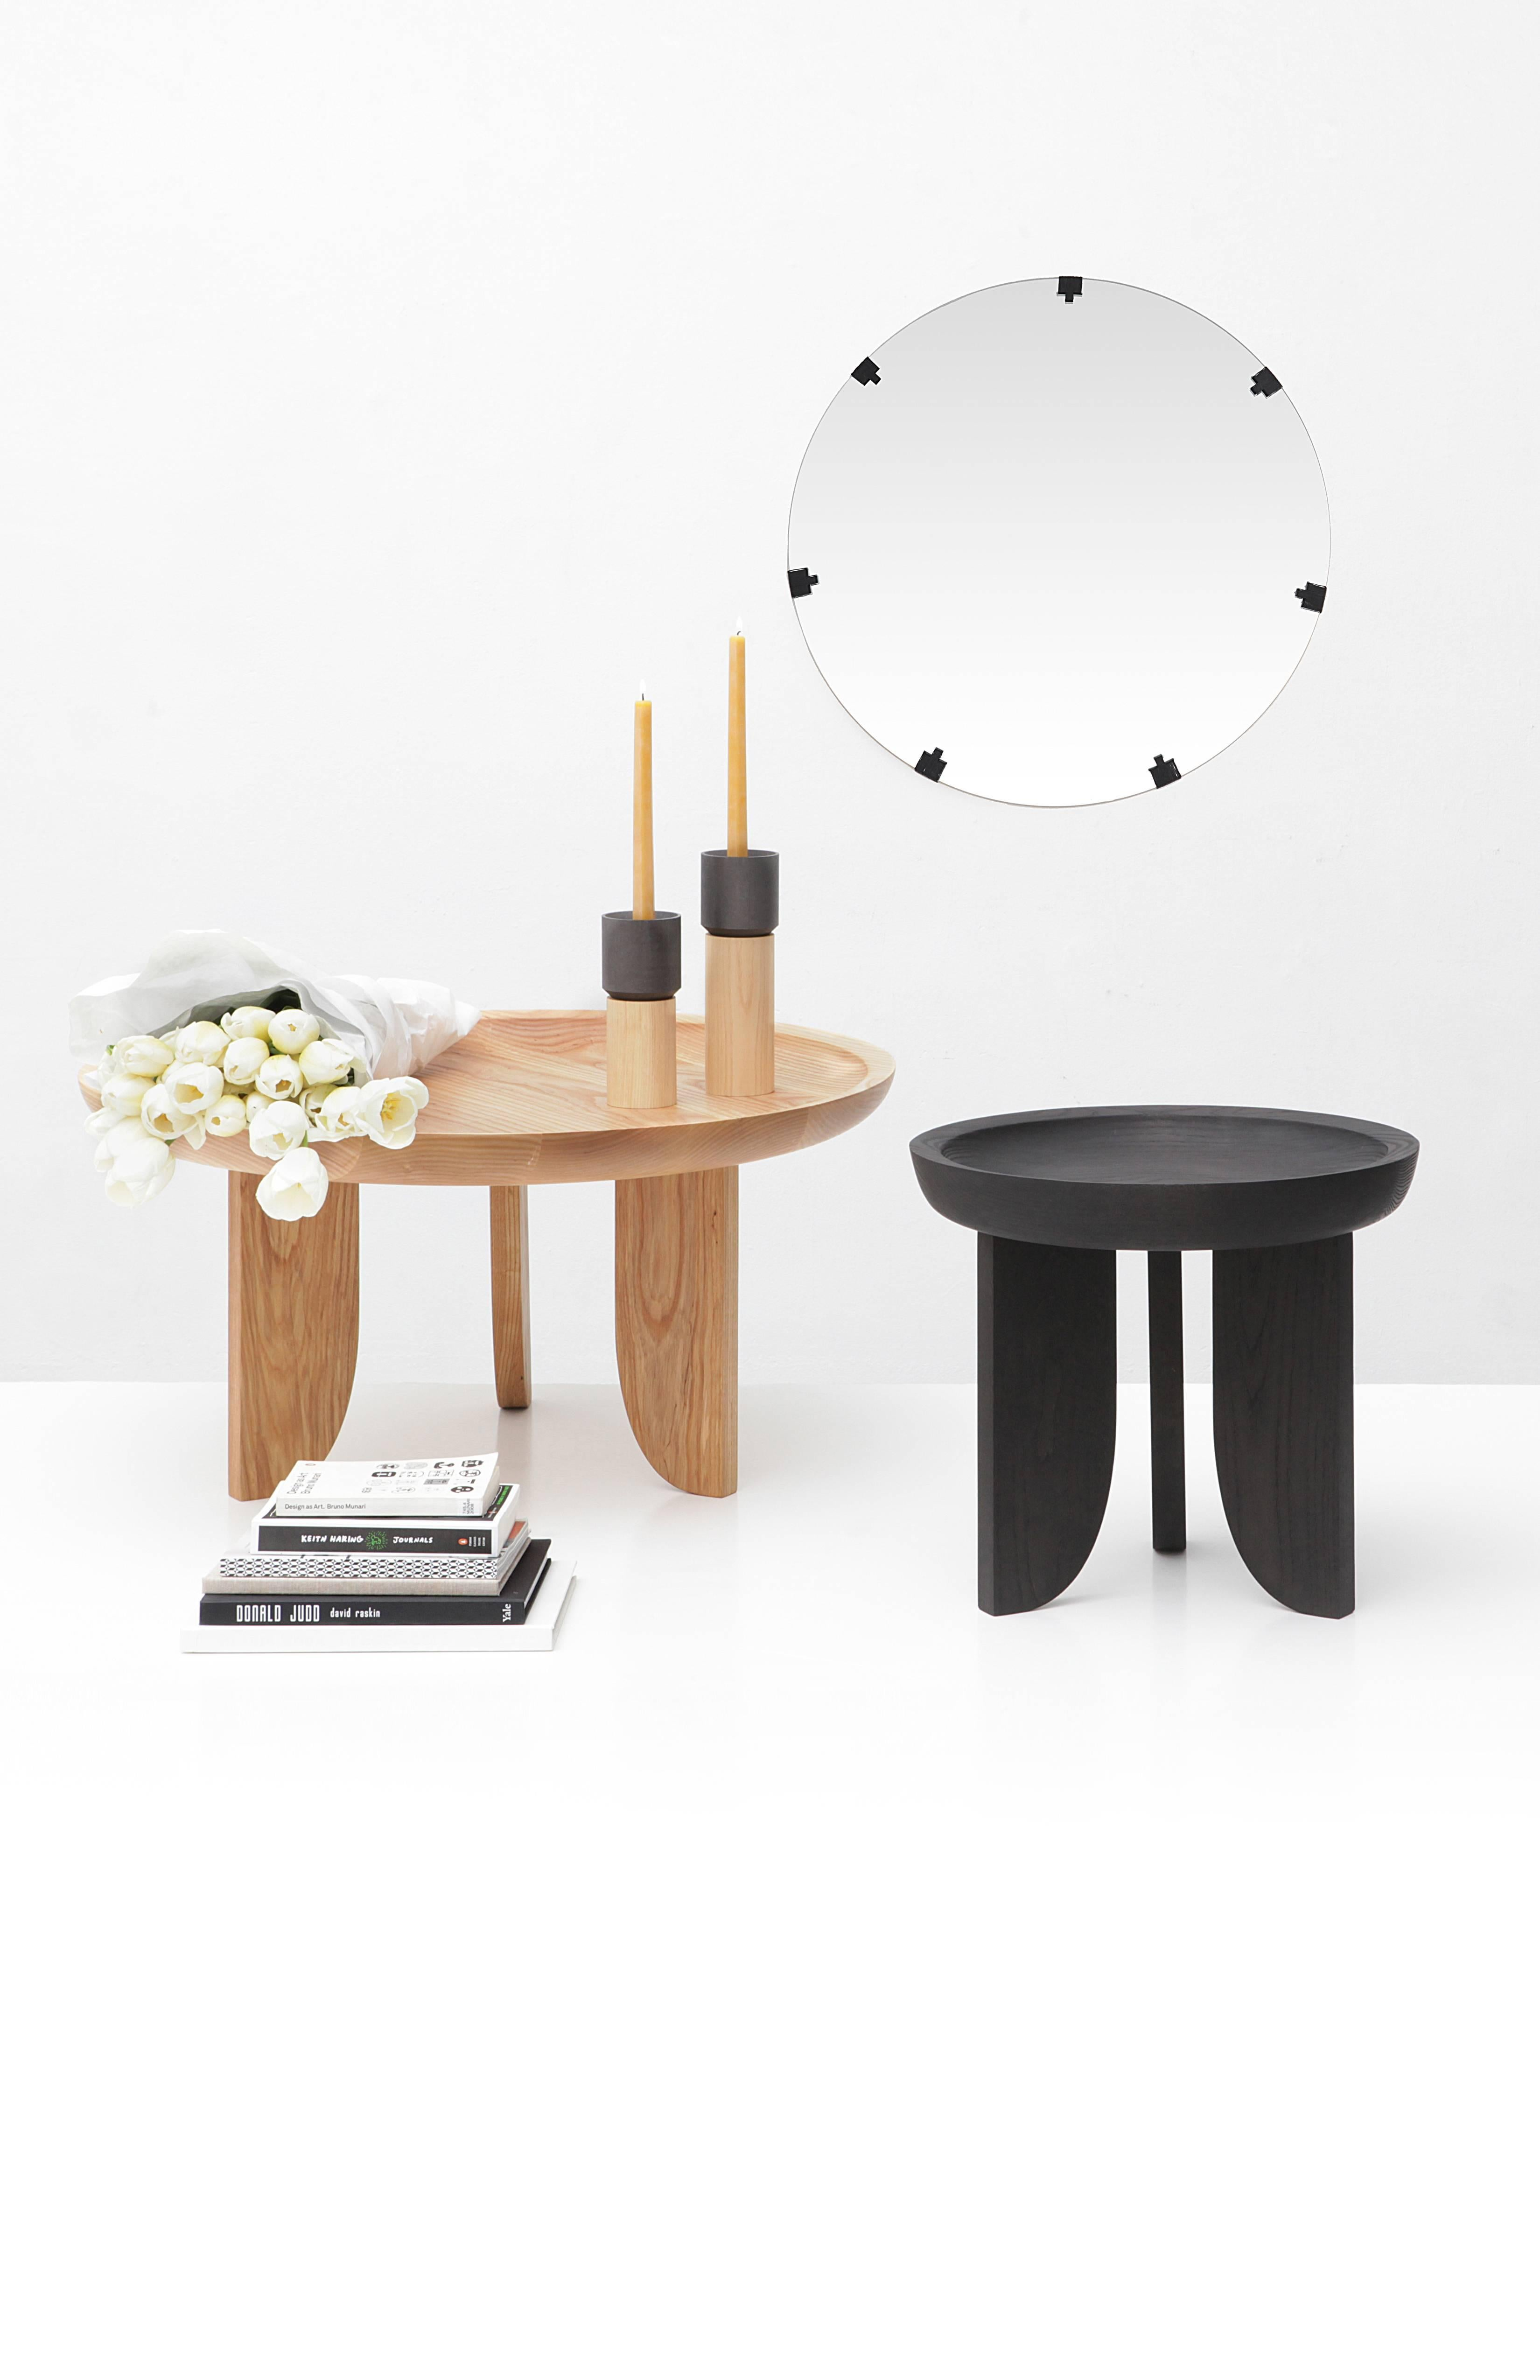 Dish Solid Wood Contemporary Sculptural Carved Side Coffee Stool Table  Black For Sale At 1stdibs